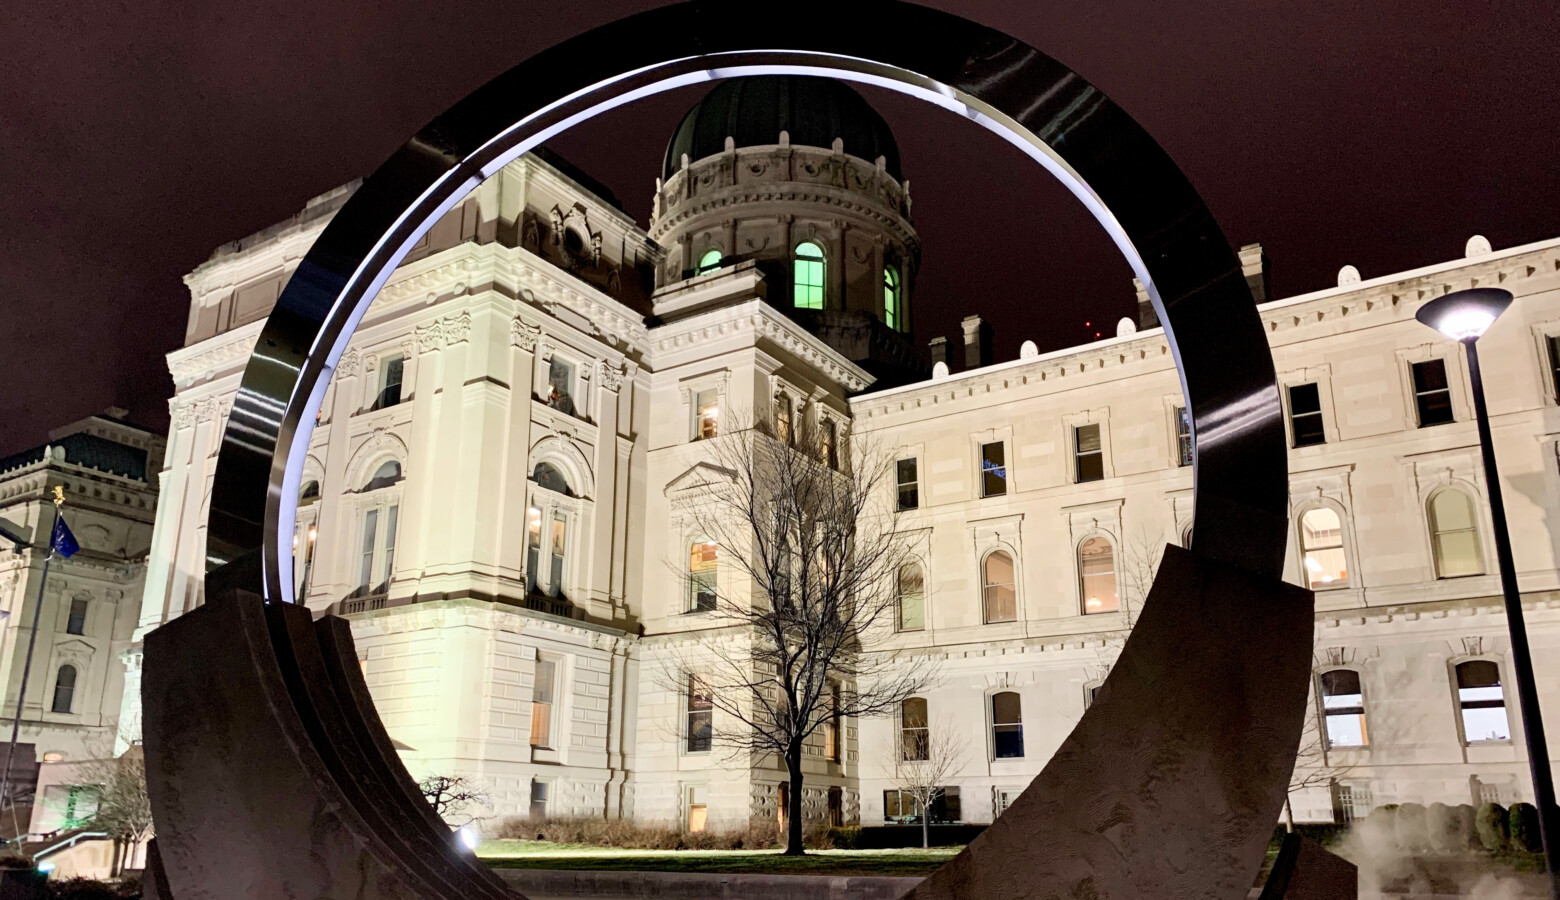 The vast majority of laws passed each year by the Indiana General Assembly take effect either immediately or on July 1. (Brandon Smith/IPB News)